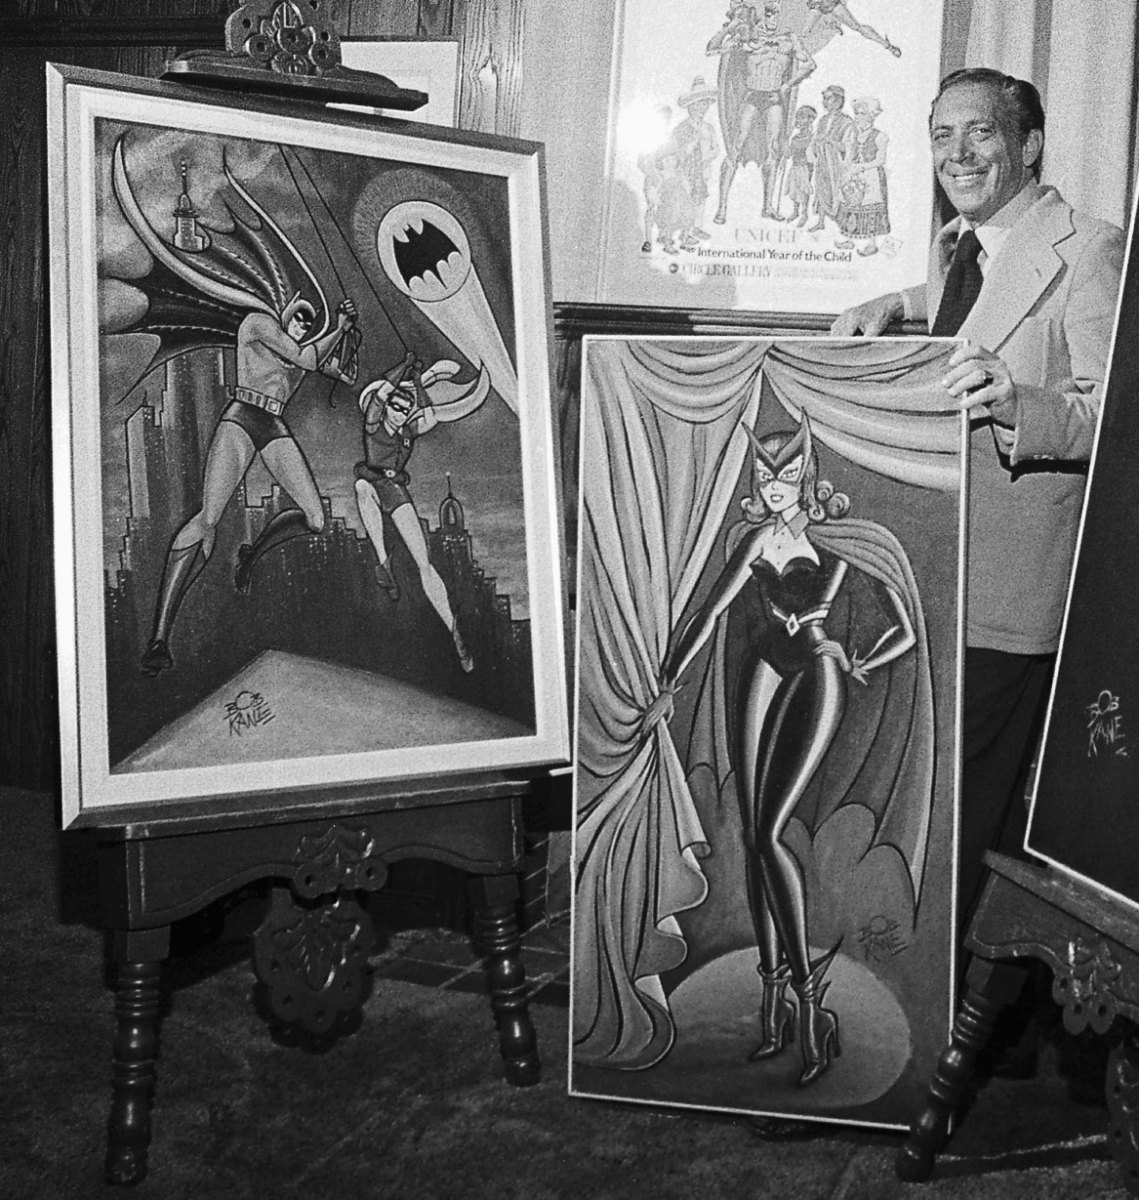 Bob Kane, who created the comic strip character Batman, posing with some of his original drawings of Batman, Robin and Batwoman, in 1979. (Credit: Bettmann Archive/Getty Images)